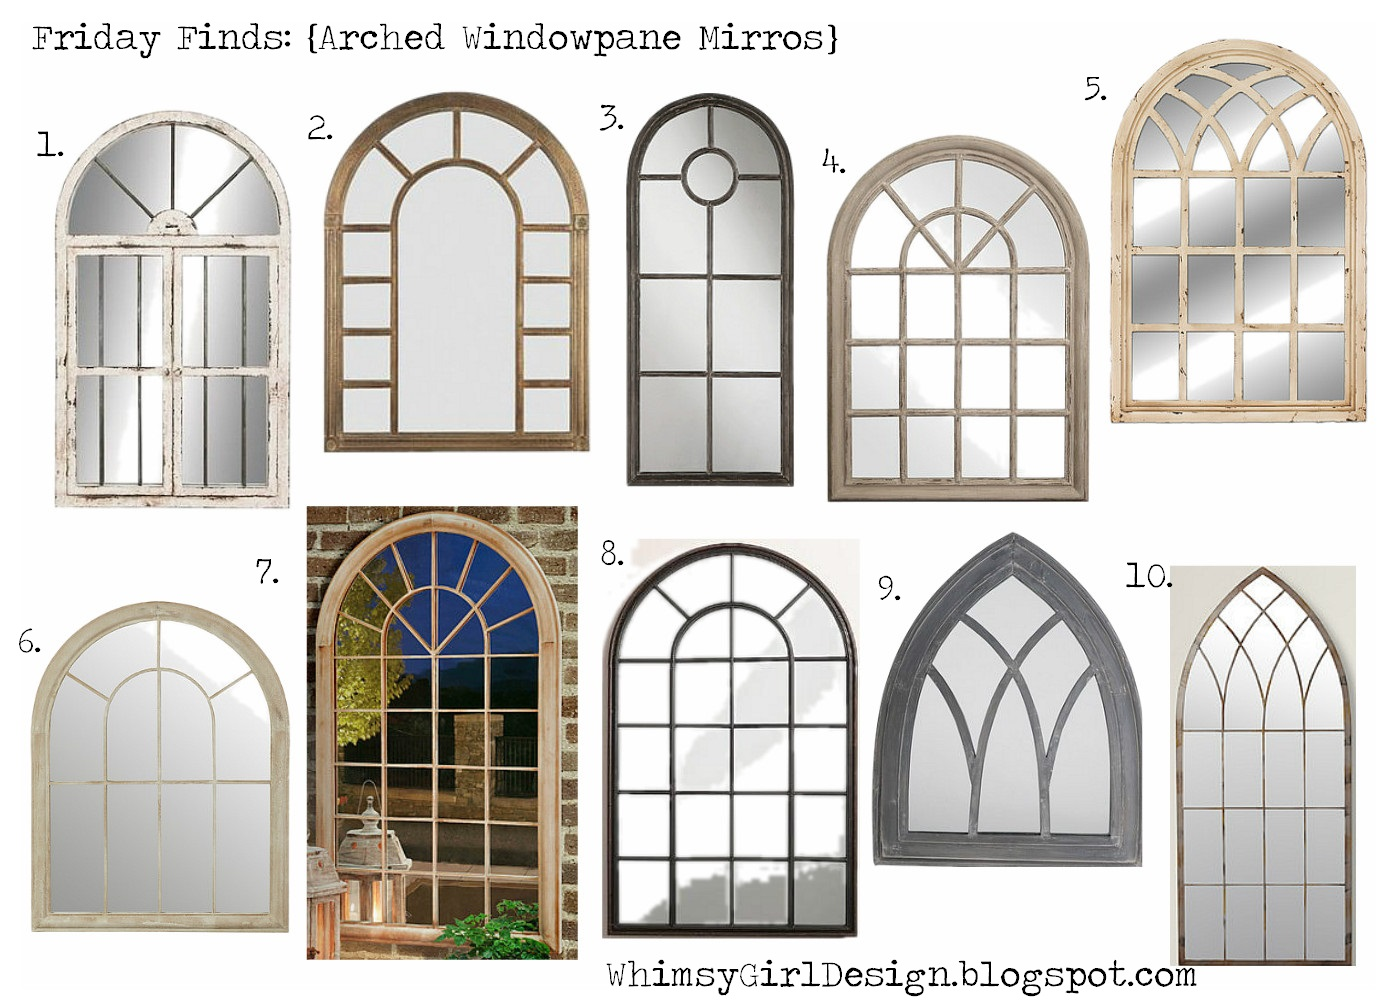 whimsy girl: Friday Finds: {Arch Windowpane Mirrors}